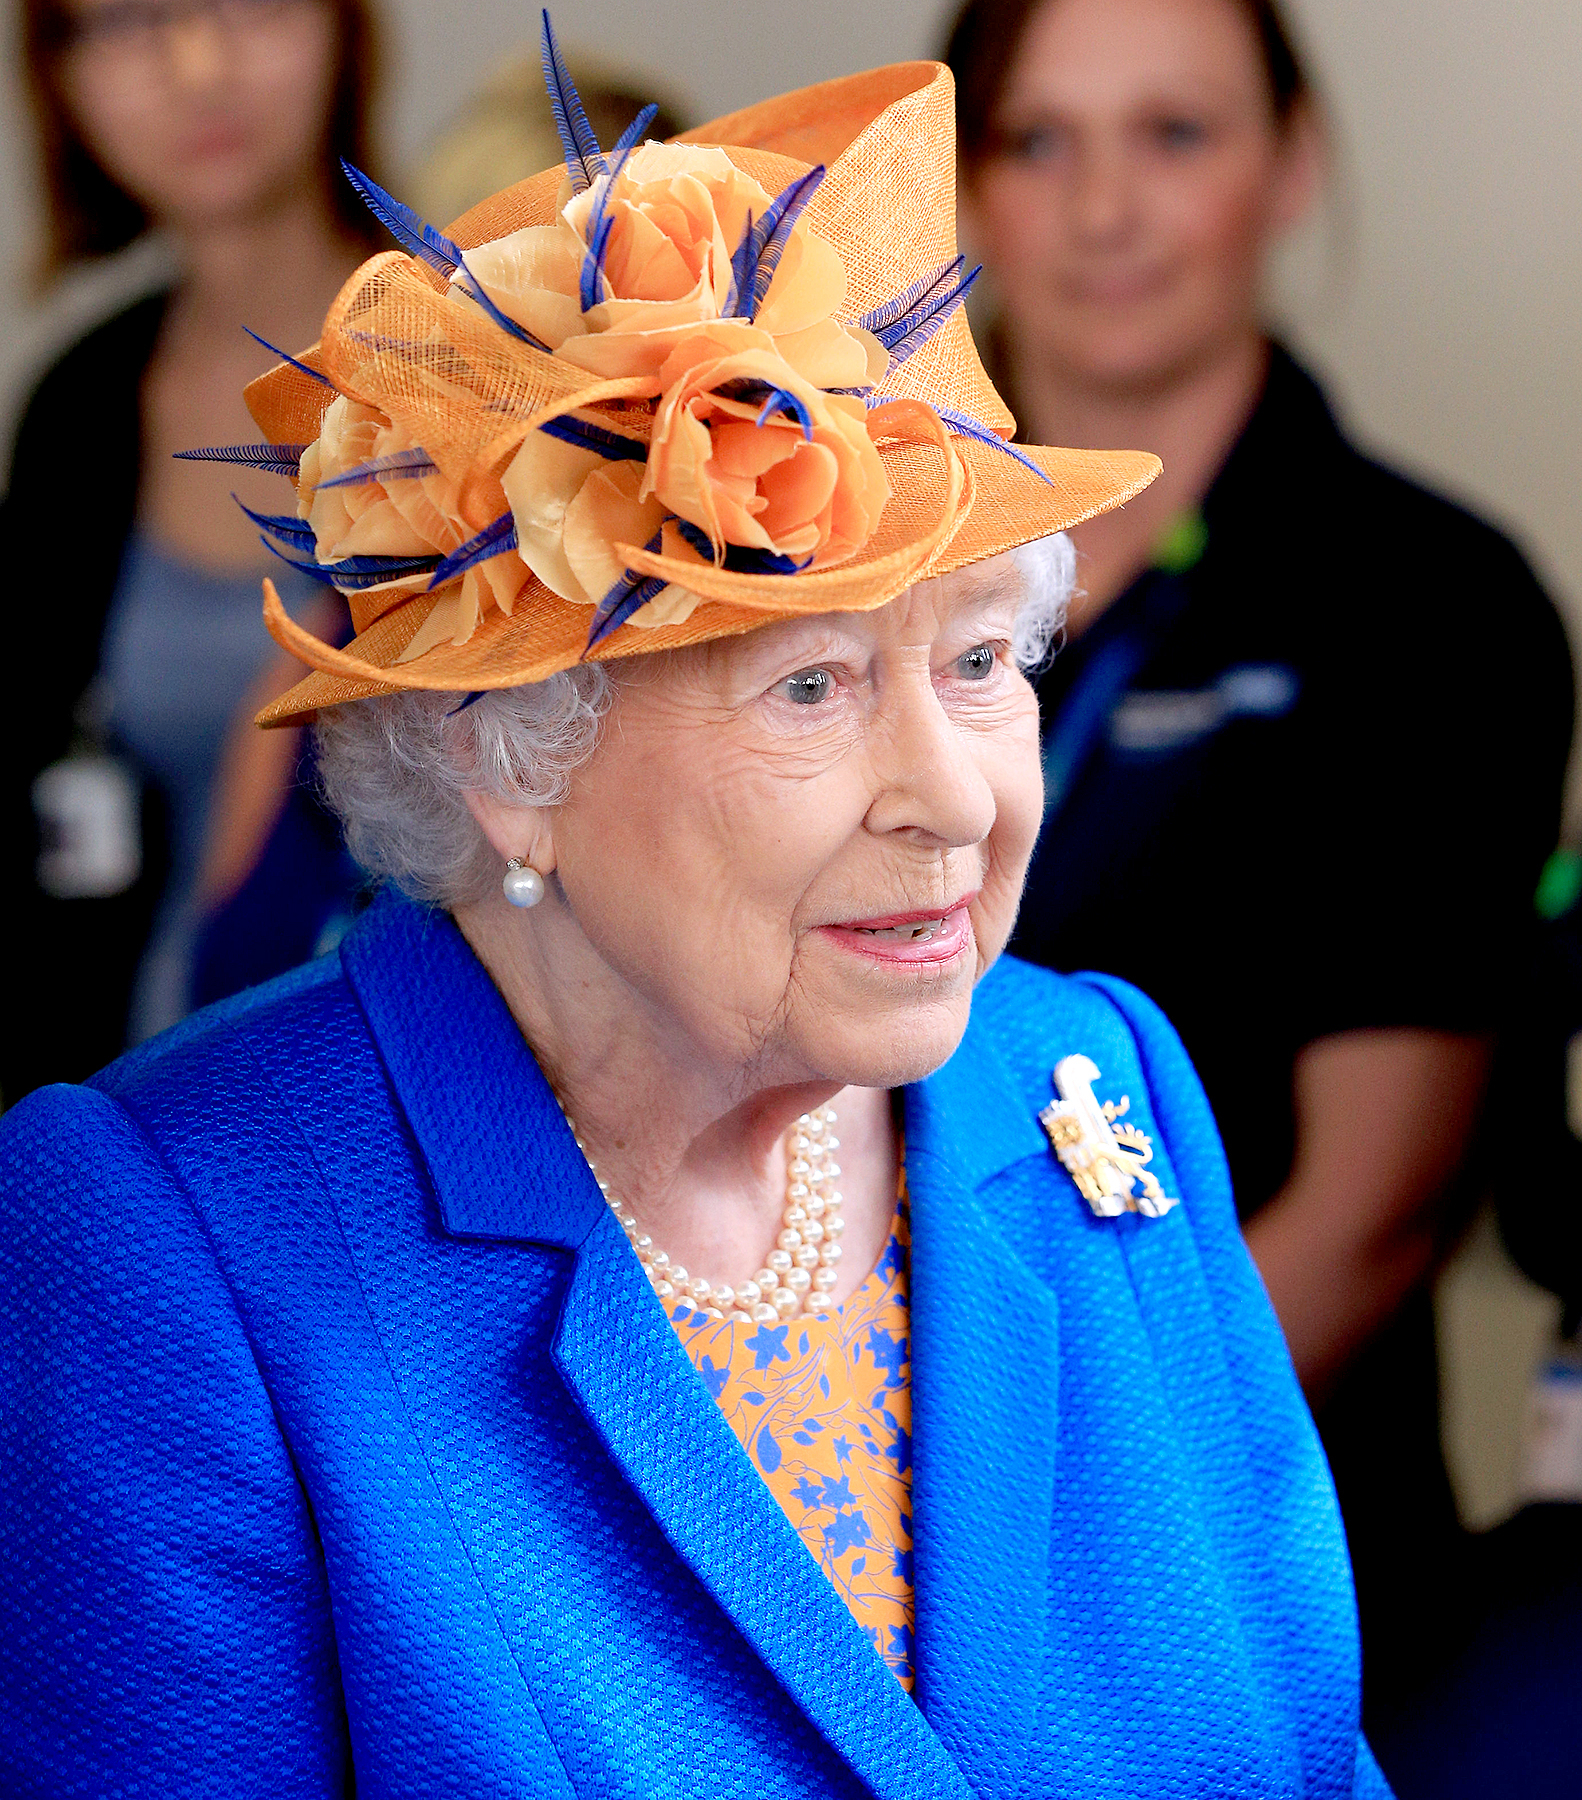 Queen Elizabeth II during a visit to the Royal Manchester Children's Hospital on May 25, 2017 in Manchester, England.